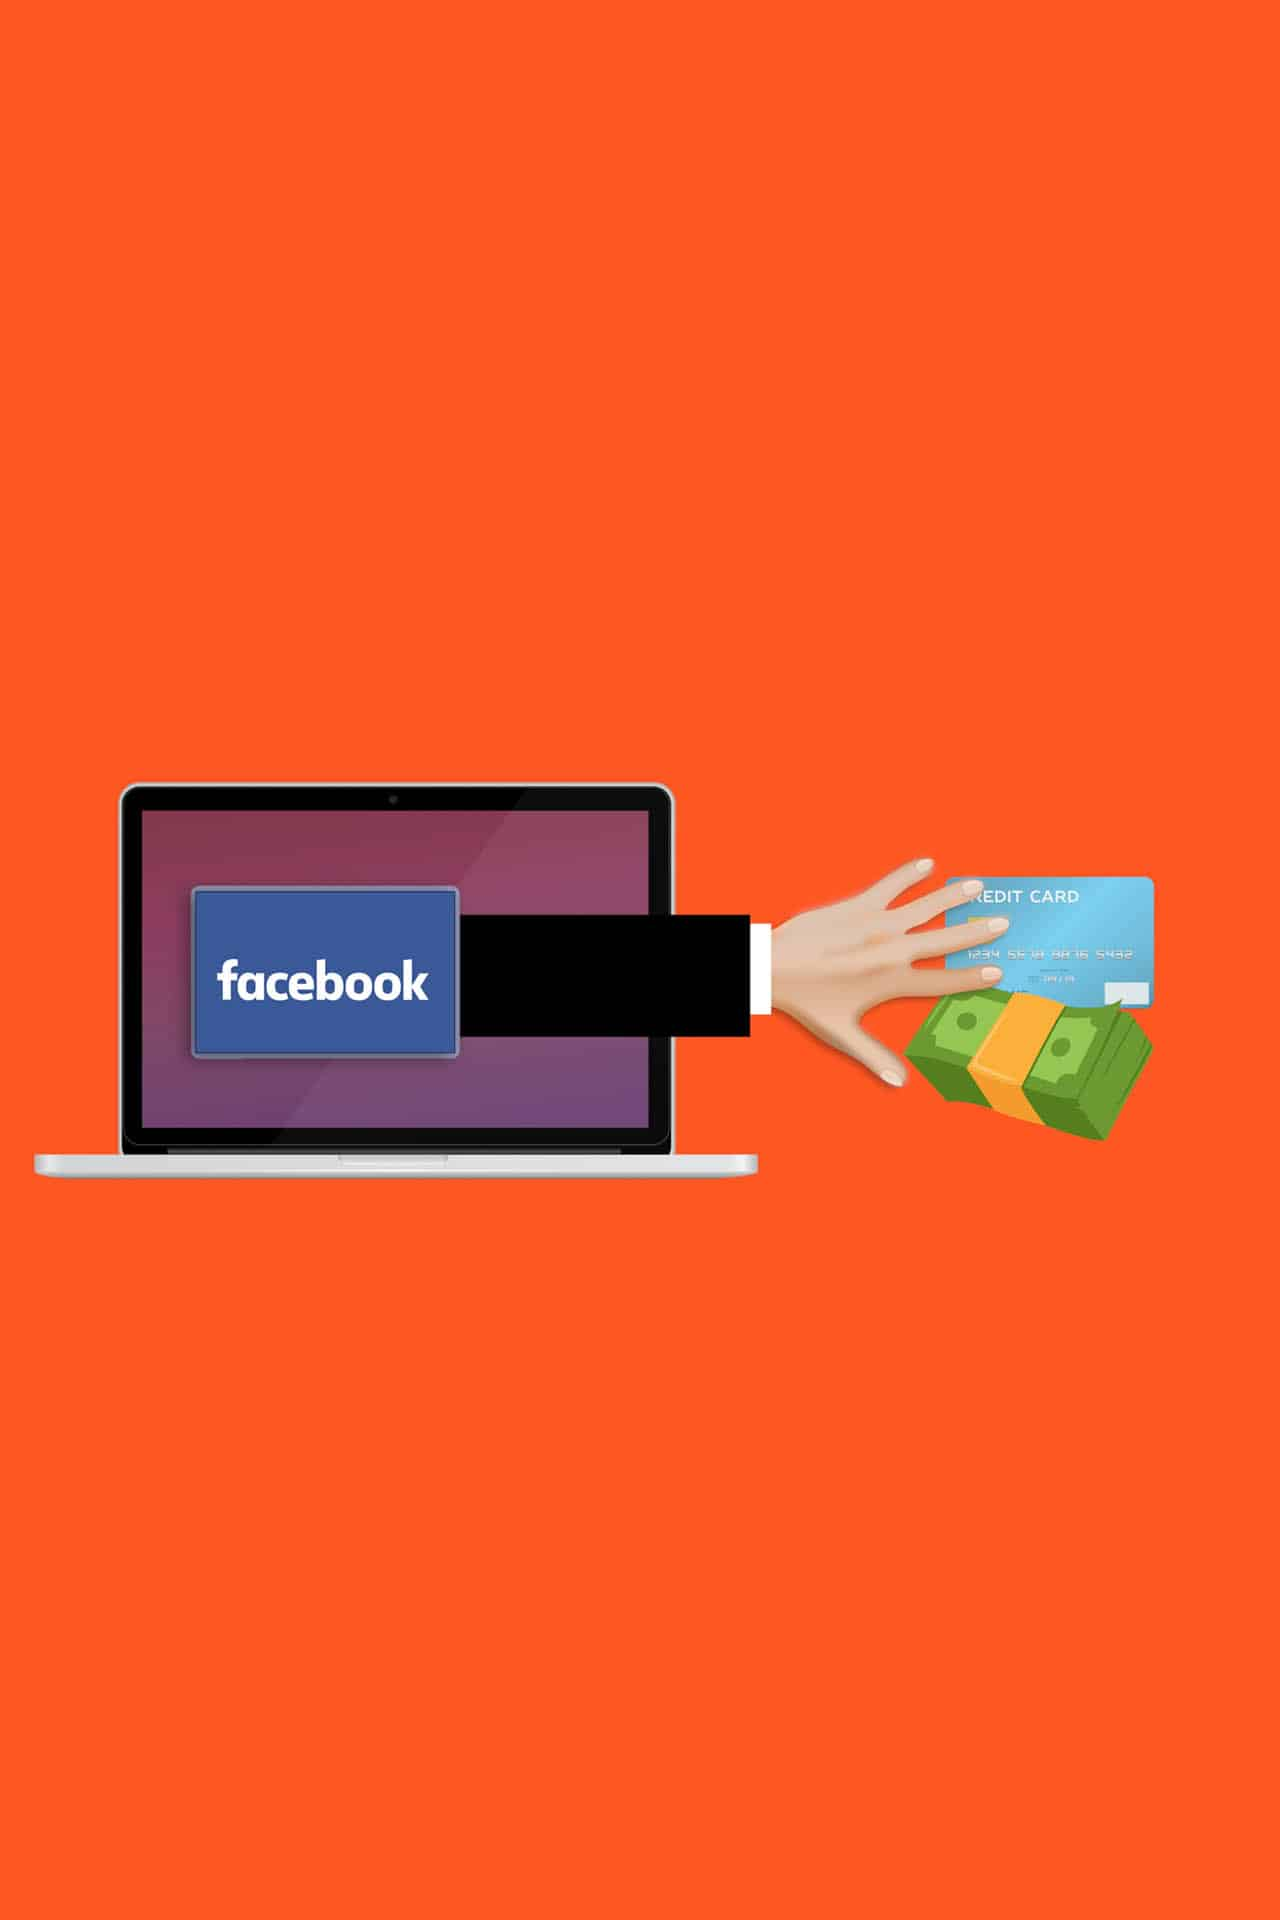 Facebook frode click injection